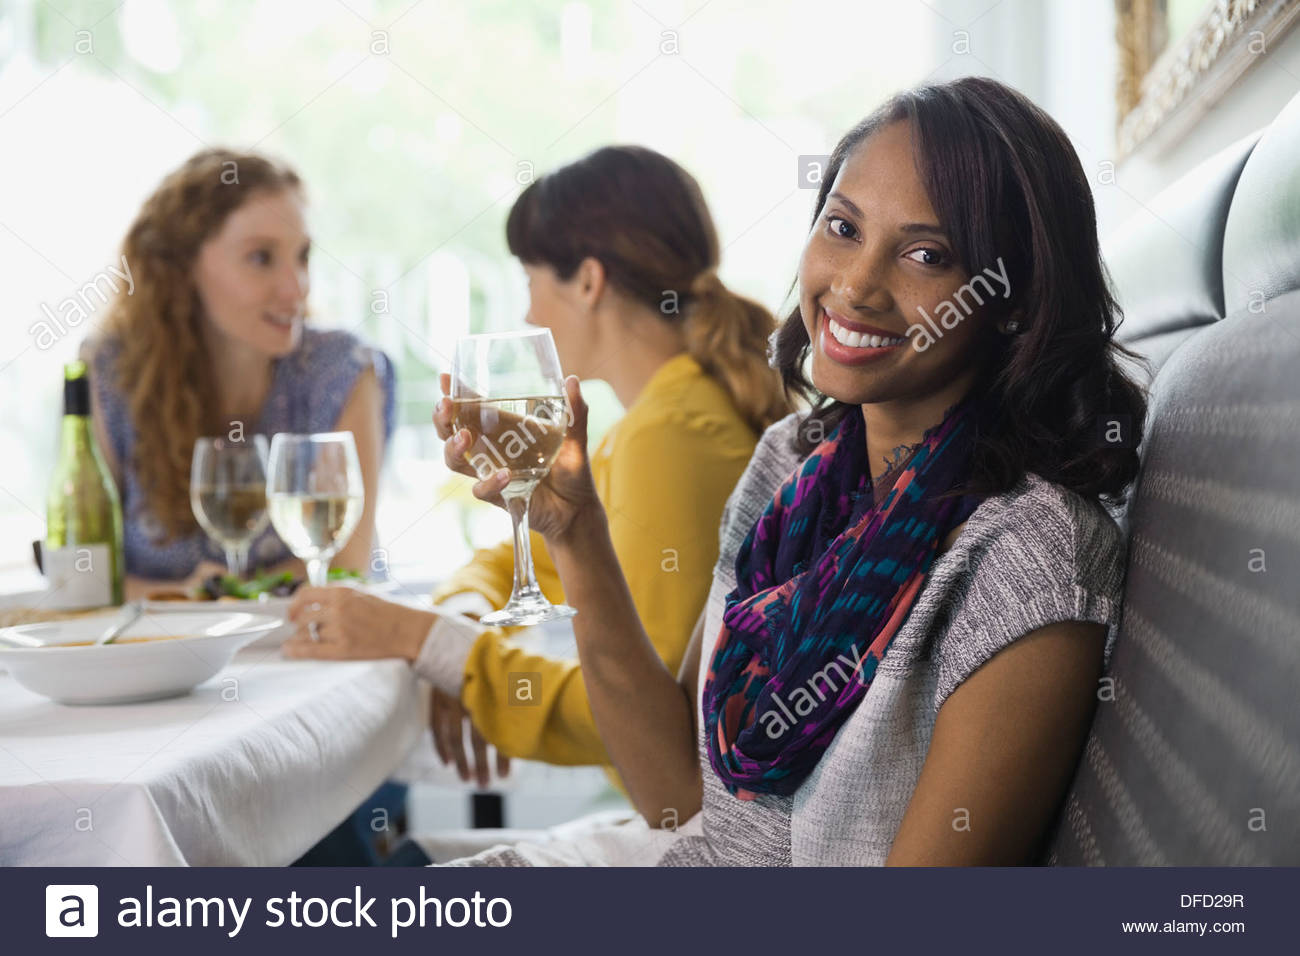 Portrait of smiling woman holding wineglass in restaurant - Stock Image